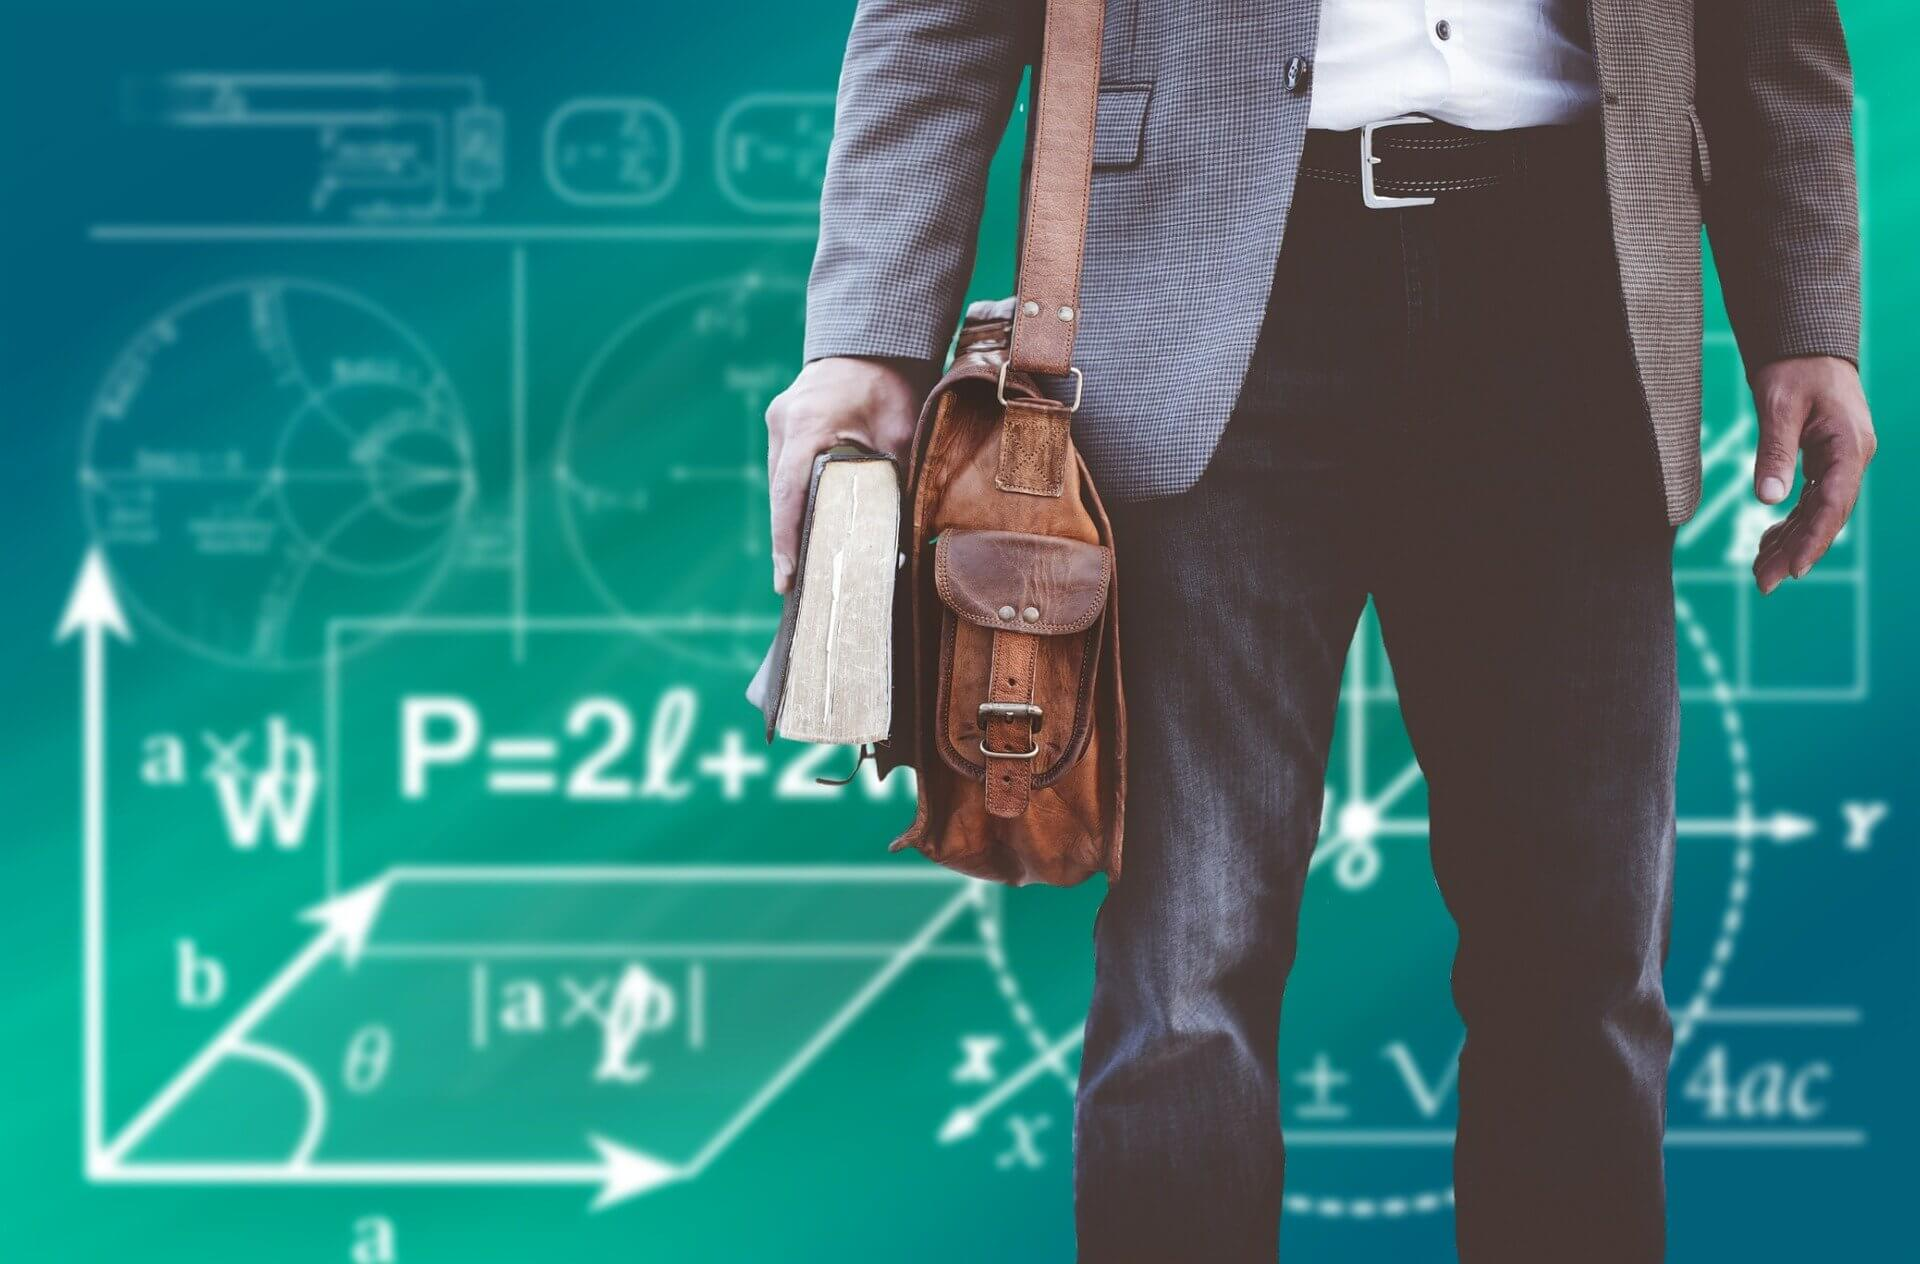 Education scholarship recipient stands in front of a chalkboard with scientific equations